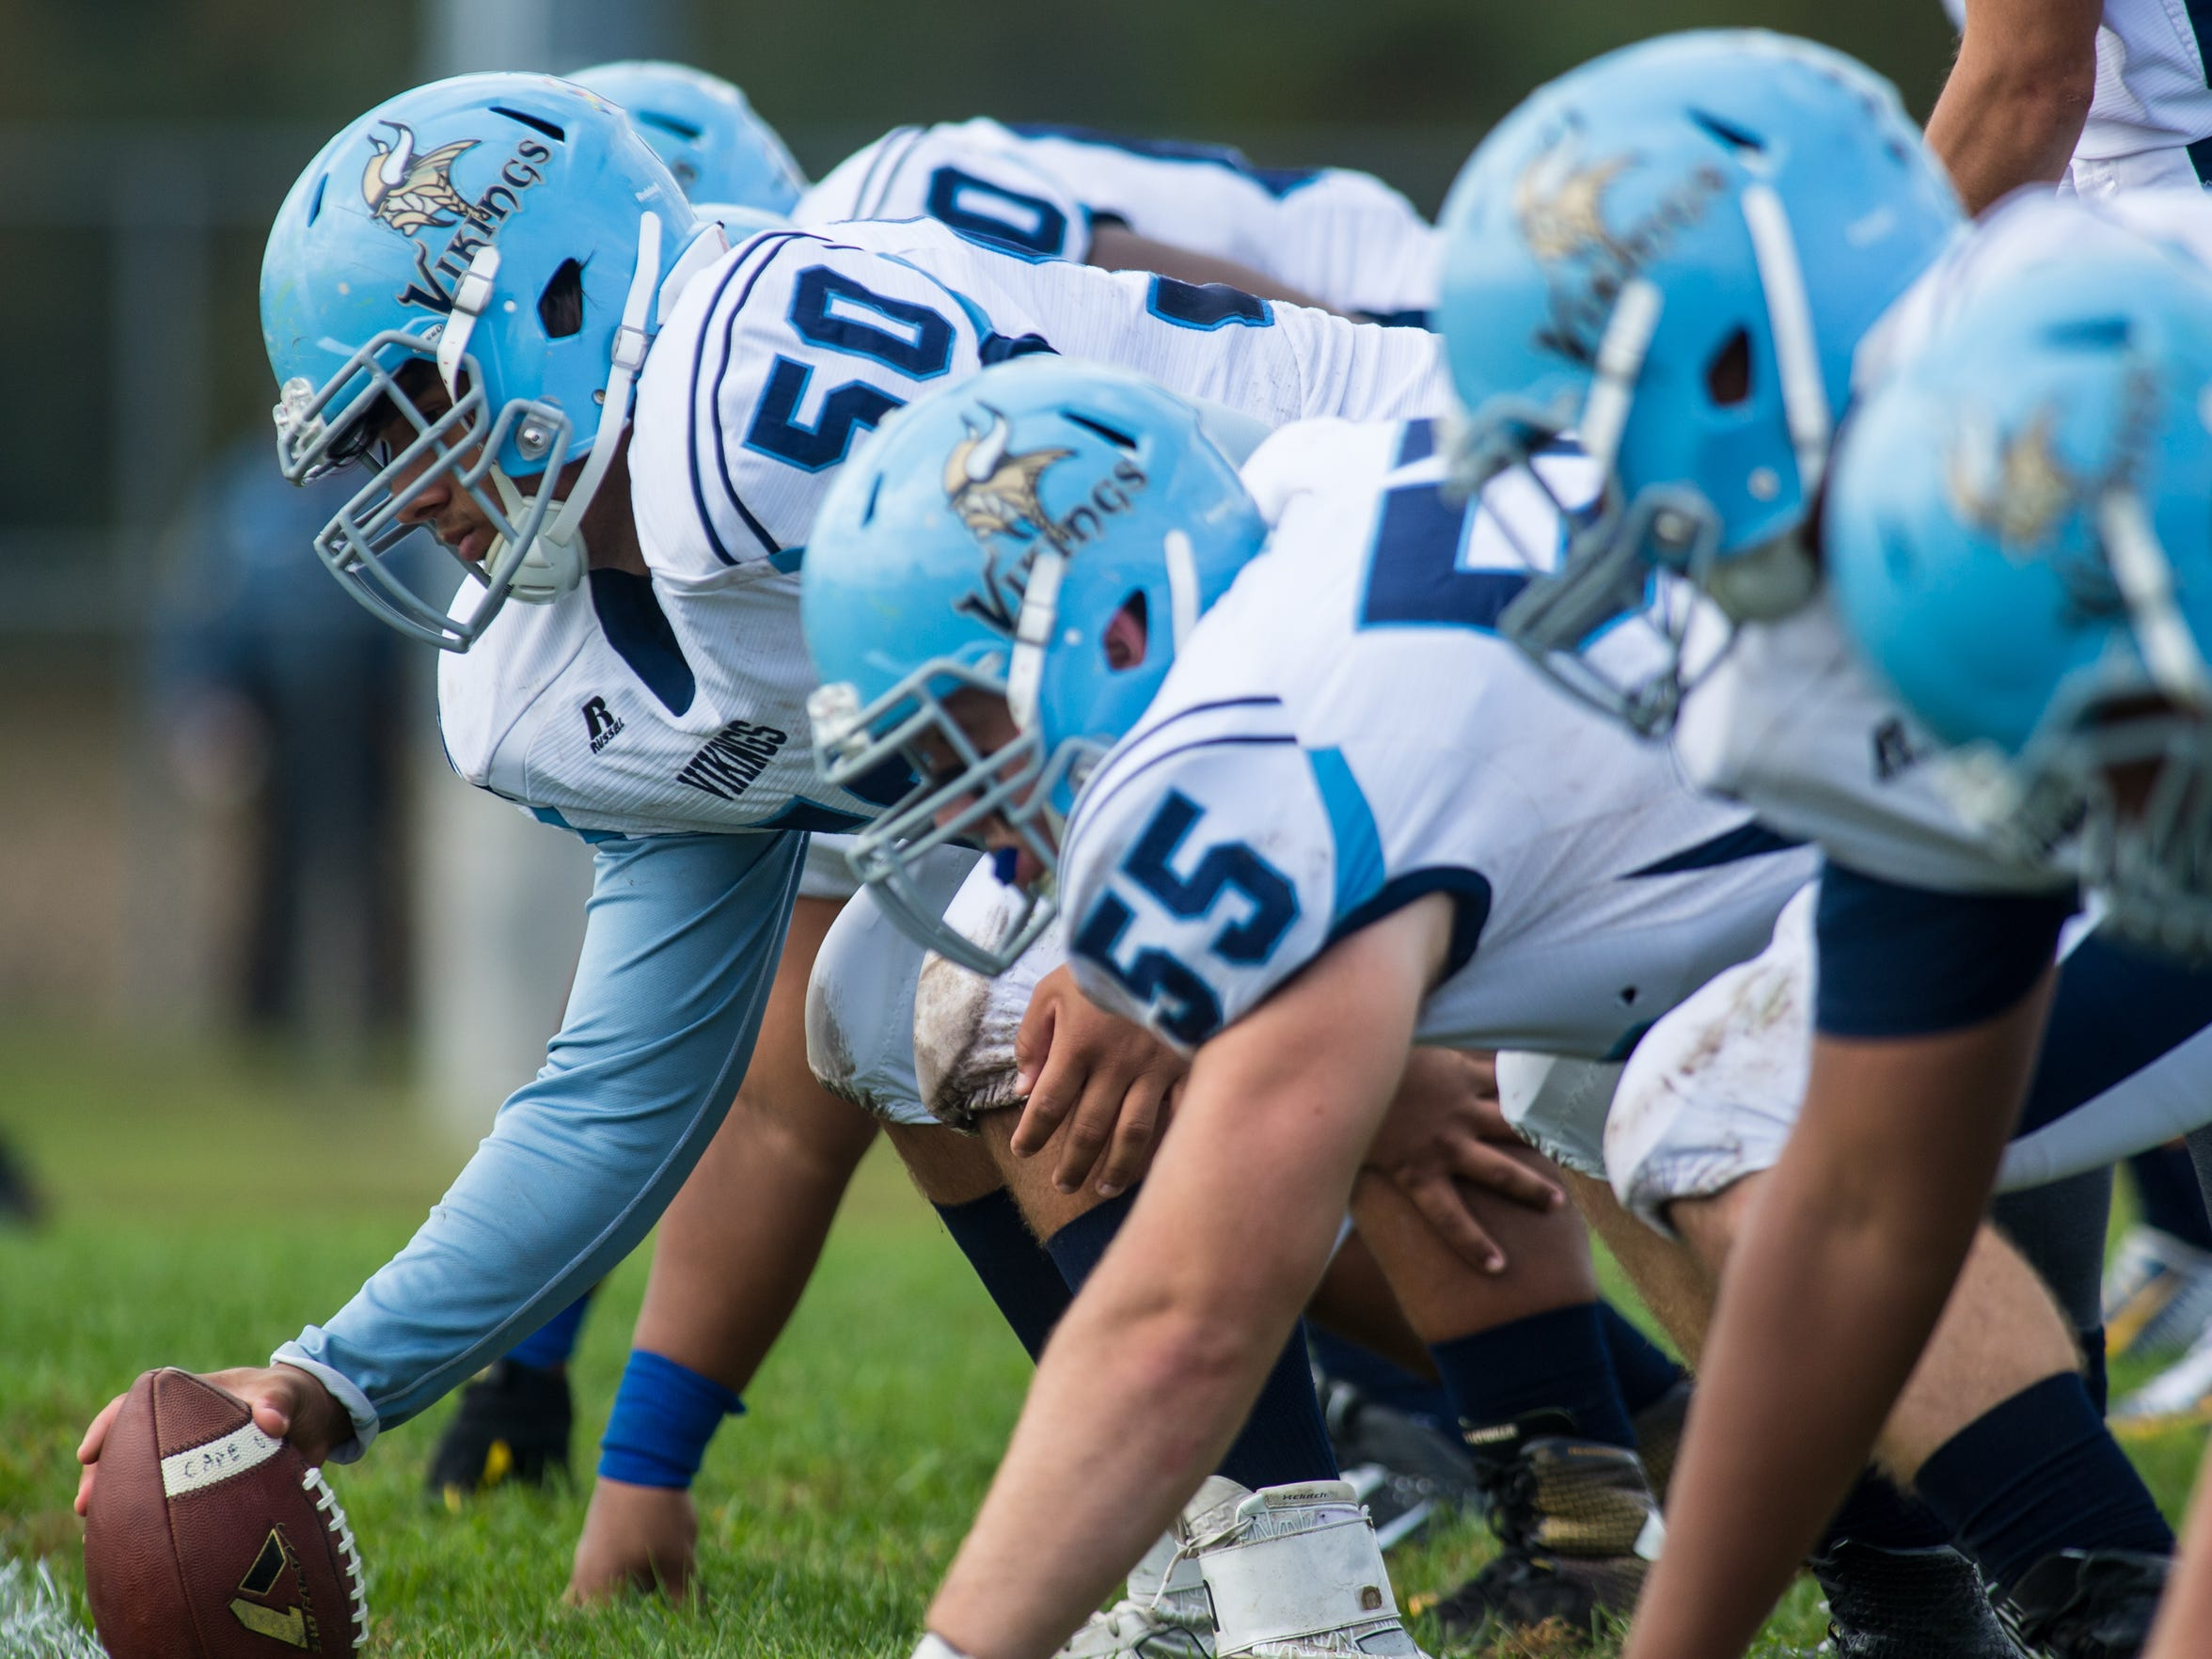 Cape Henlopen center Julian Medina (50) leads out the Viking offense against Sussex Central in Georgetown on Oct. 10, 2015.